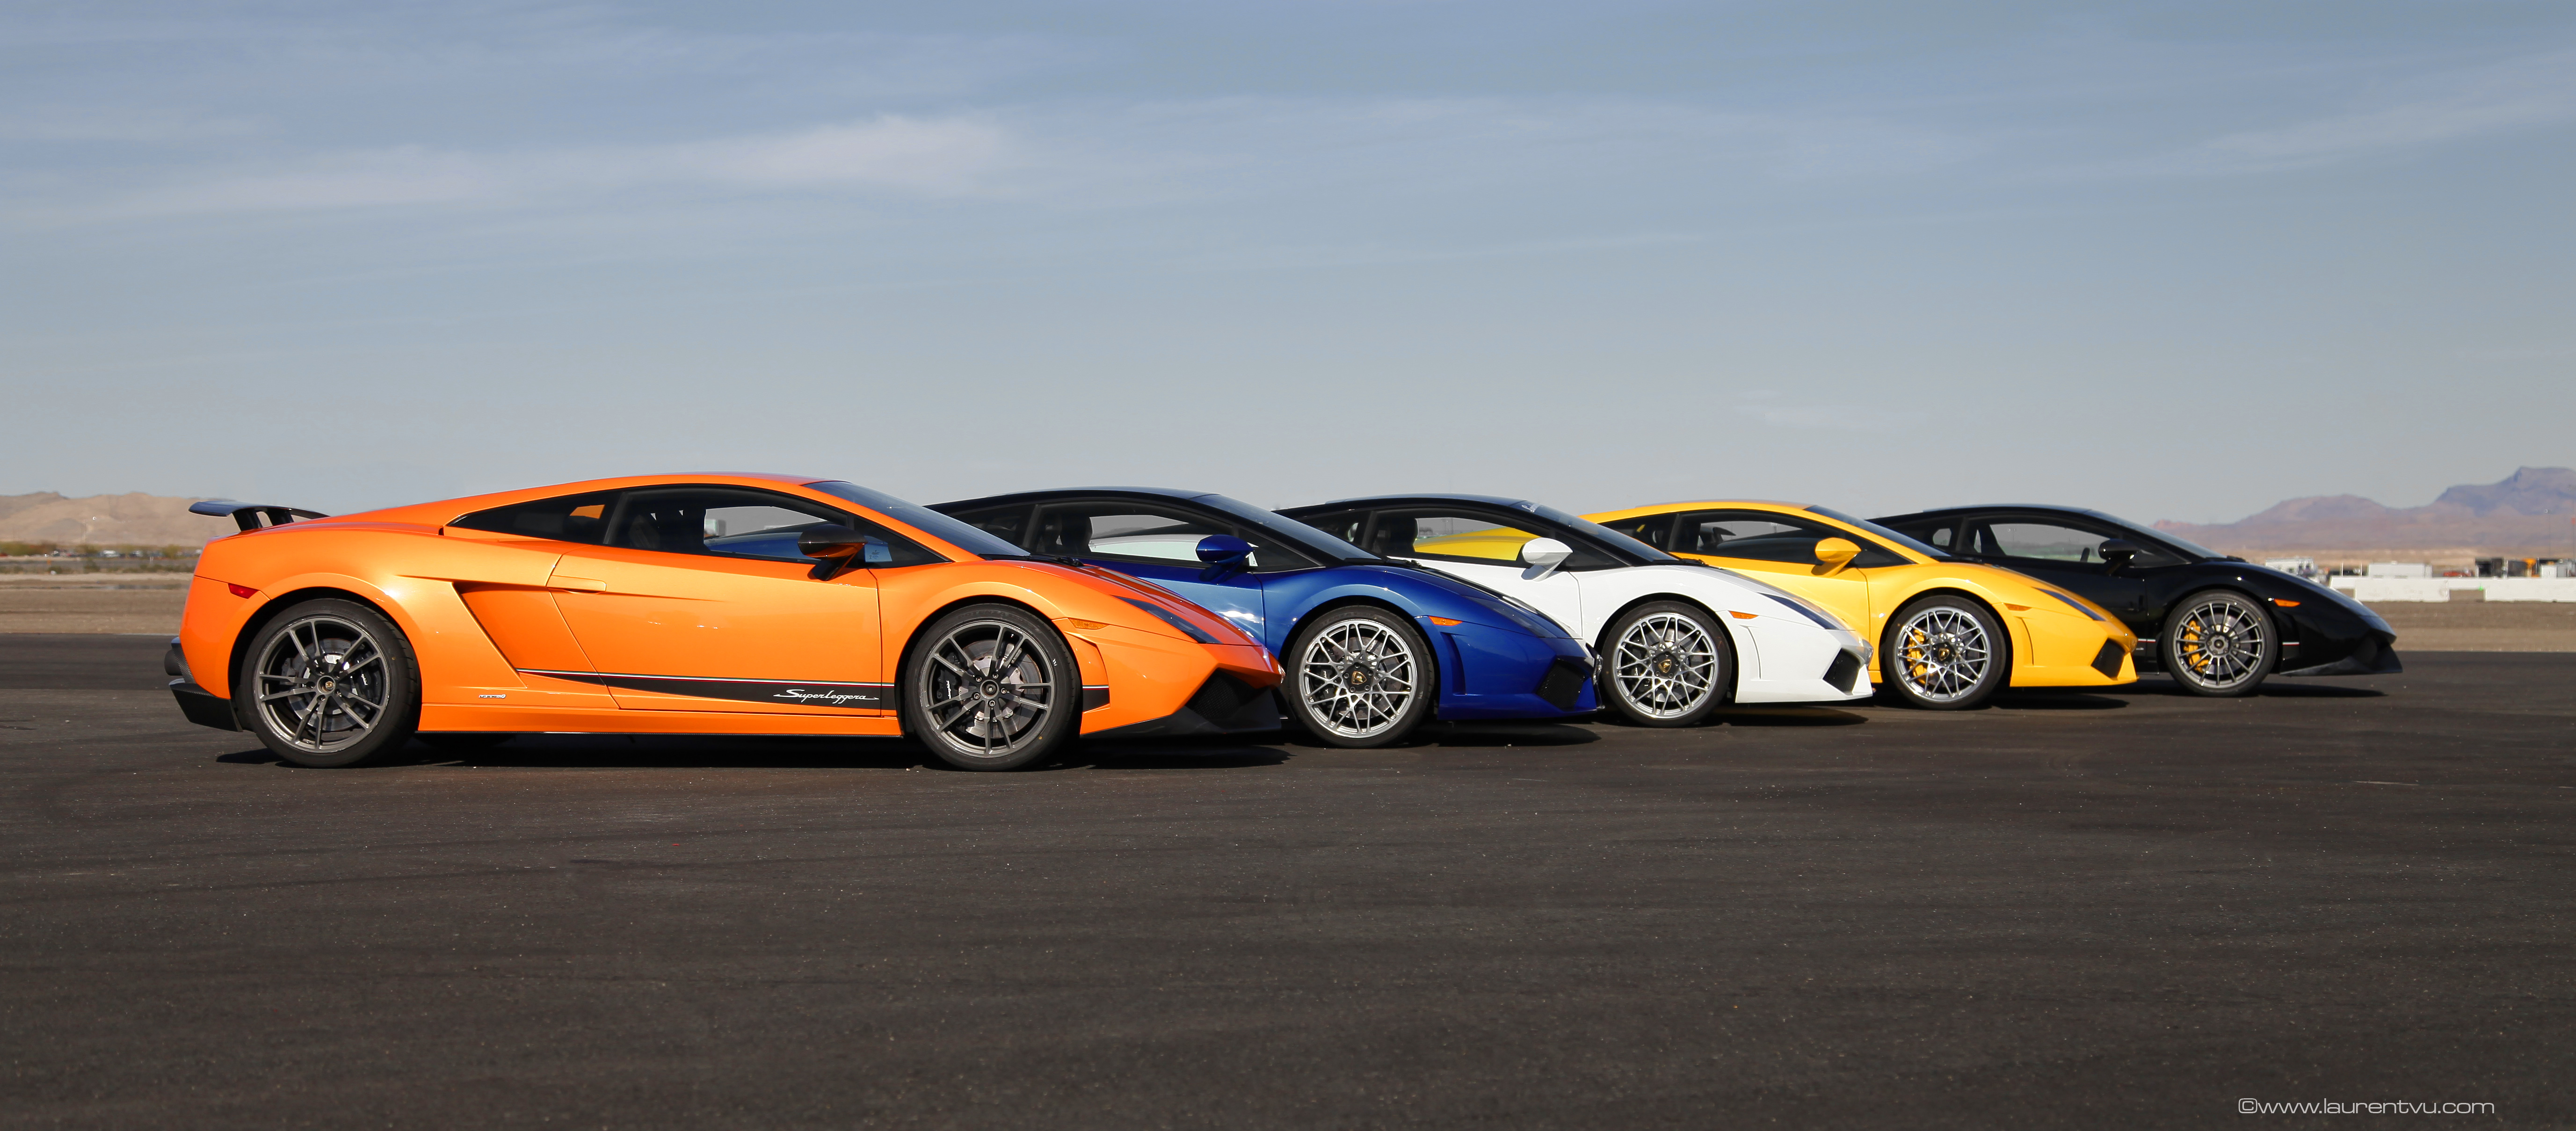 Exotic Vehicles: Owners Of Exotics Racing Las Vegas Place Second In NASCAR